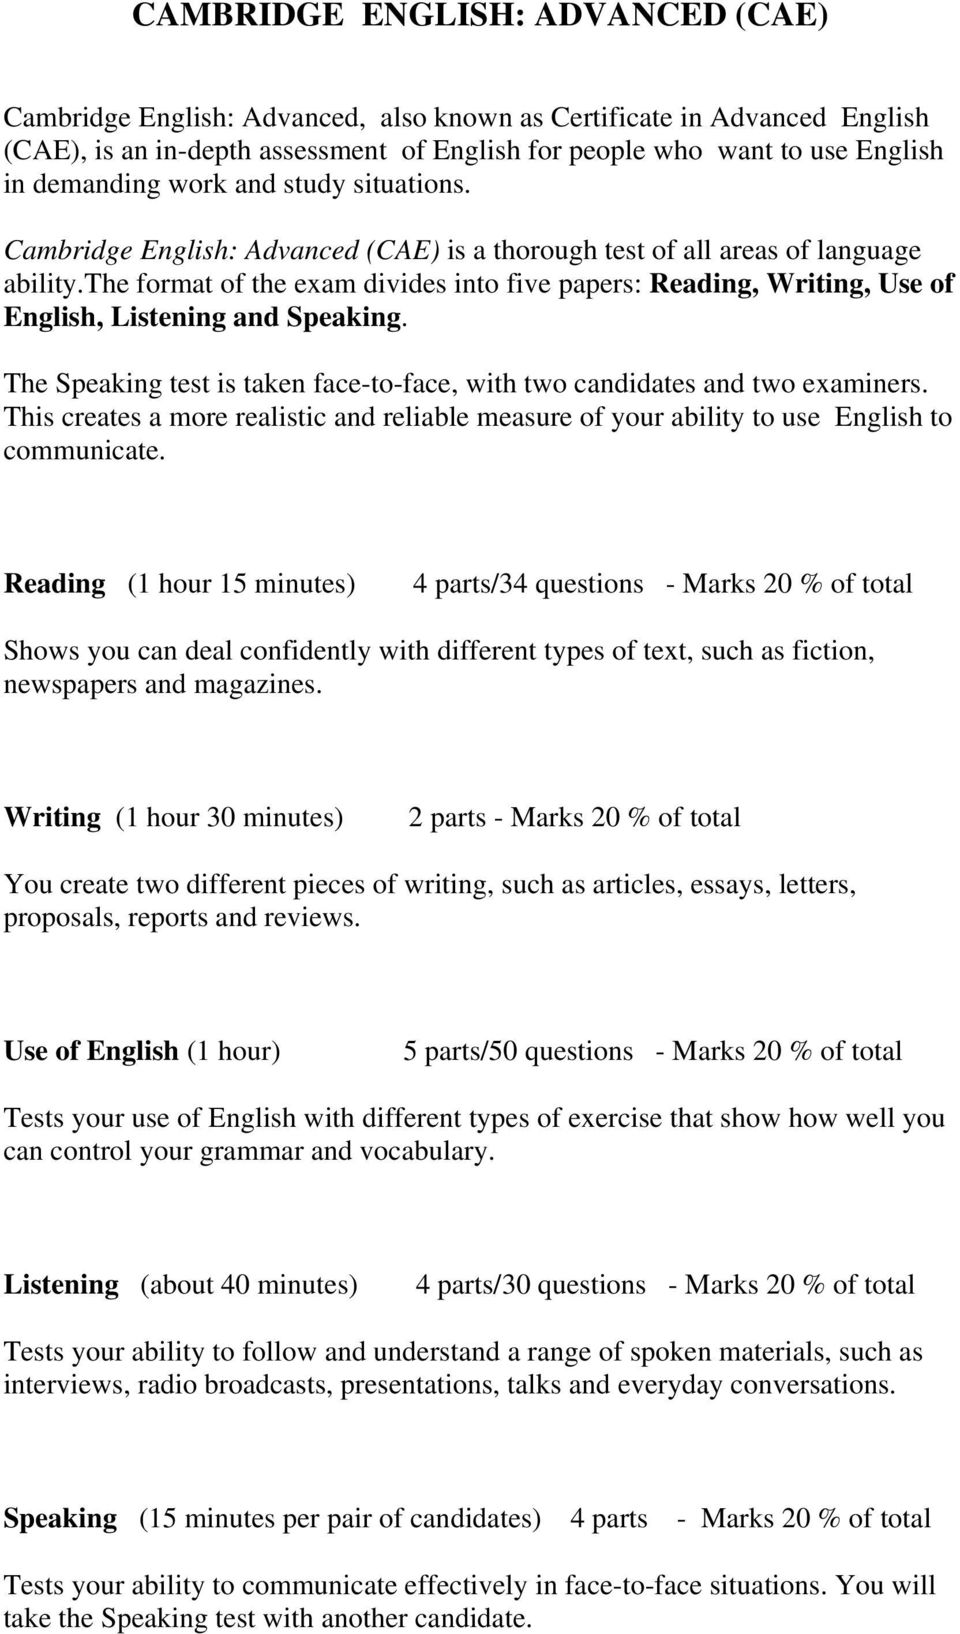 the format of the exam divides into five papers: Reading, Writing, Use of English, Listening and Speaking. The Speaking test is taken face-to-face, with two candidates and two examiners.